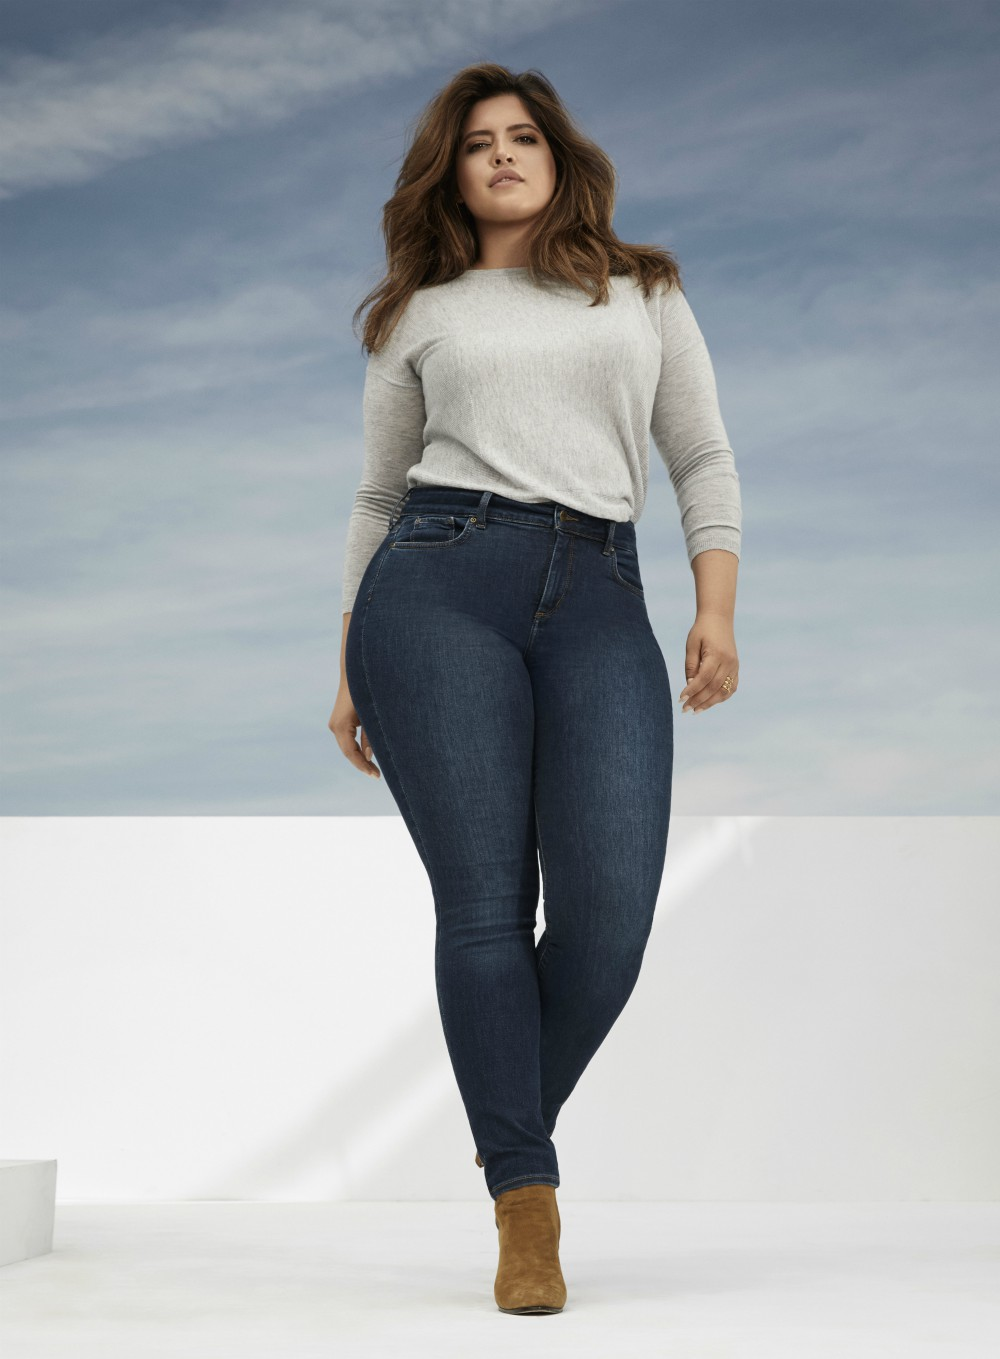 Thirty-year-old Denise Bidot, born in Miami, is of Puerto Rican and Kuwaiti descent and has modeled for straight- and plus-size fashion brands.